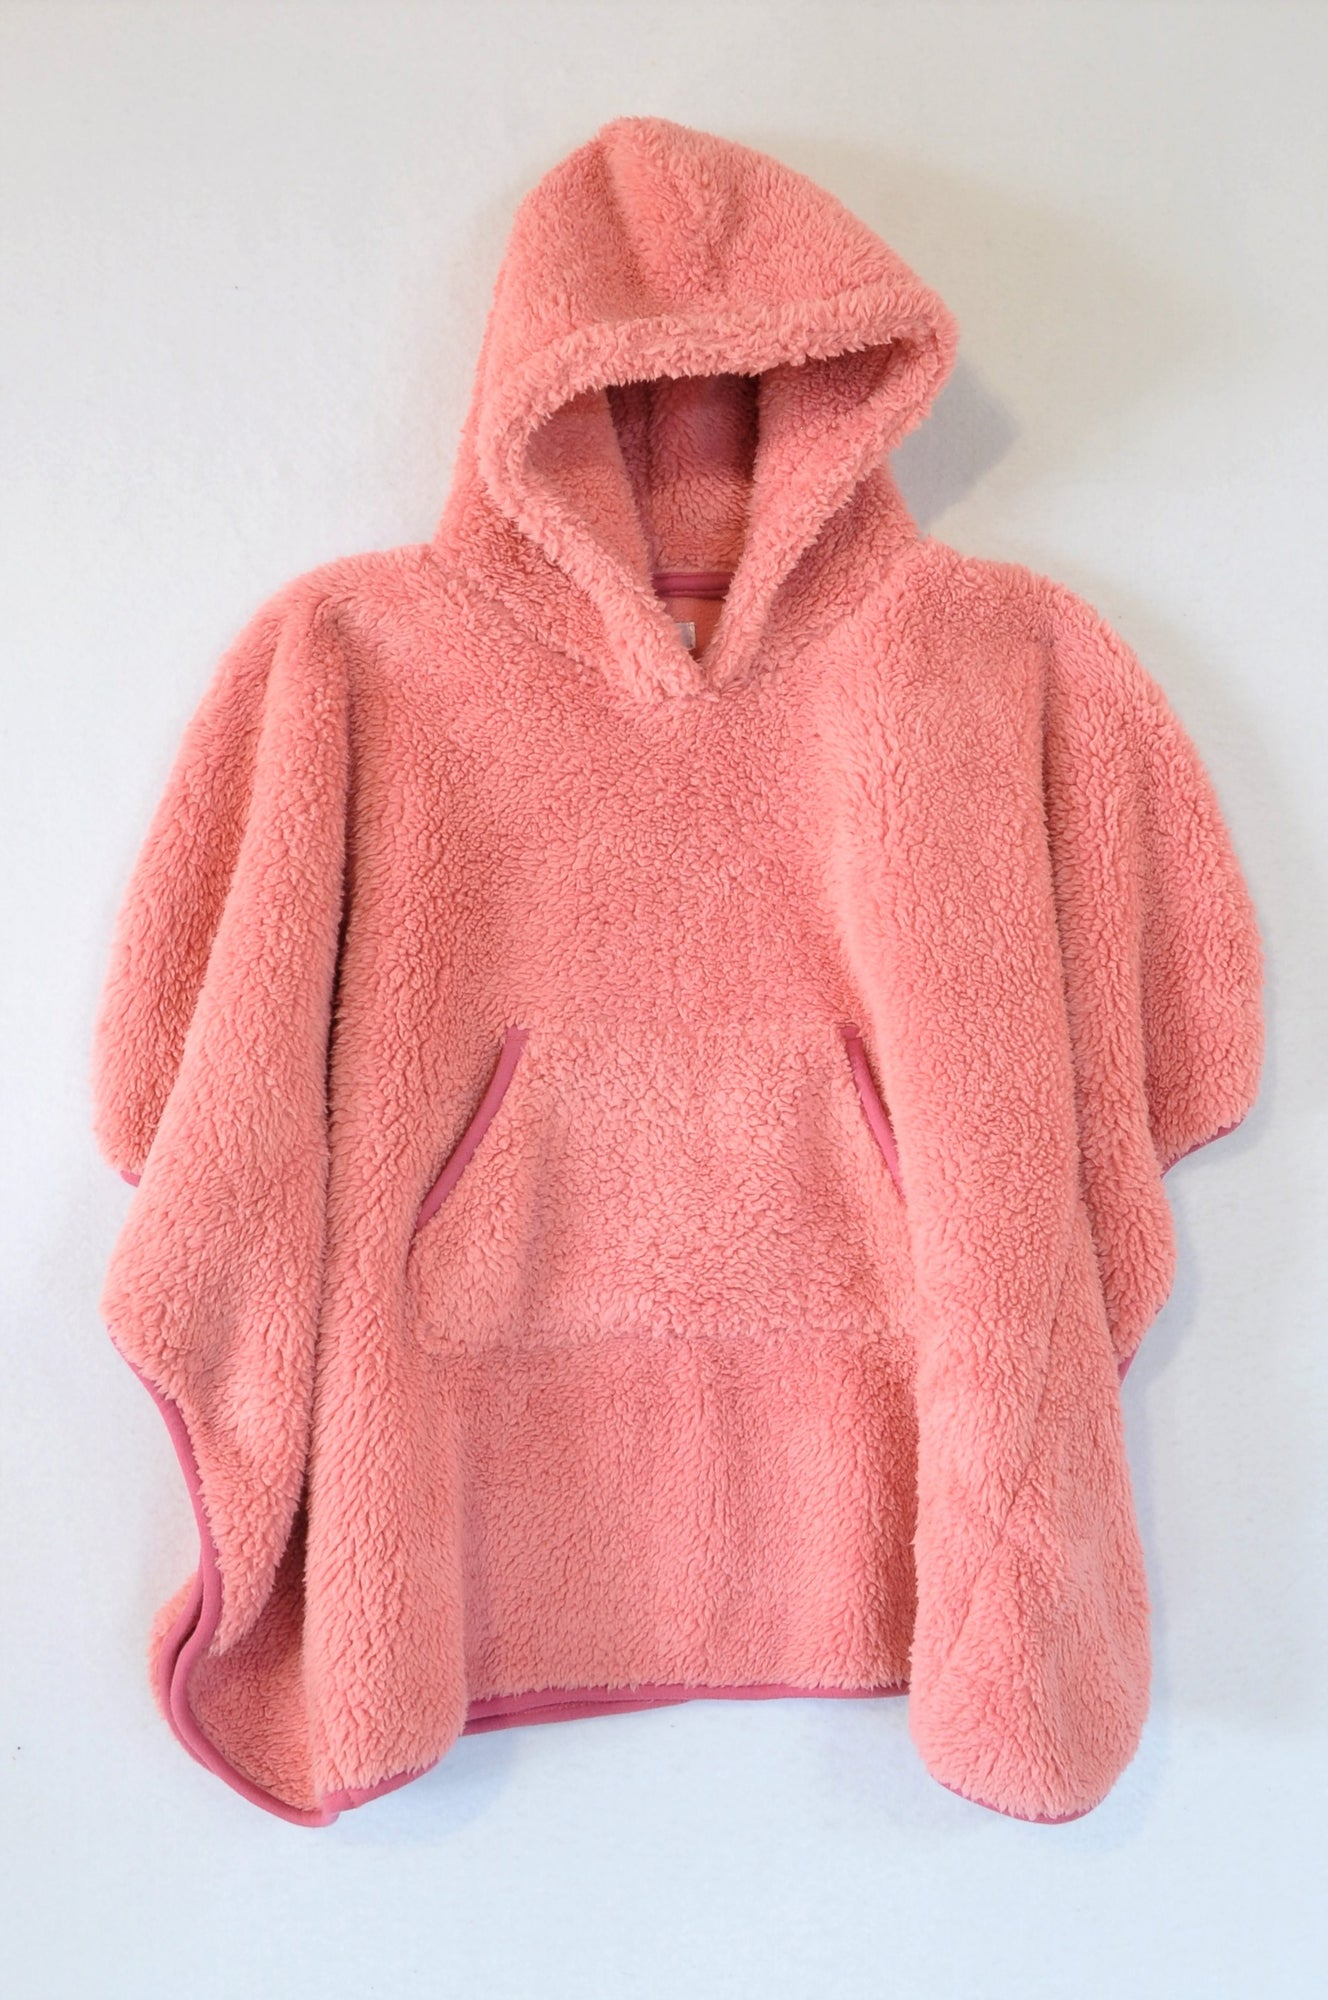 Senqu Pink Fleece Hooded Poncho Top Girls 3-4 years